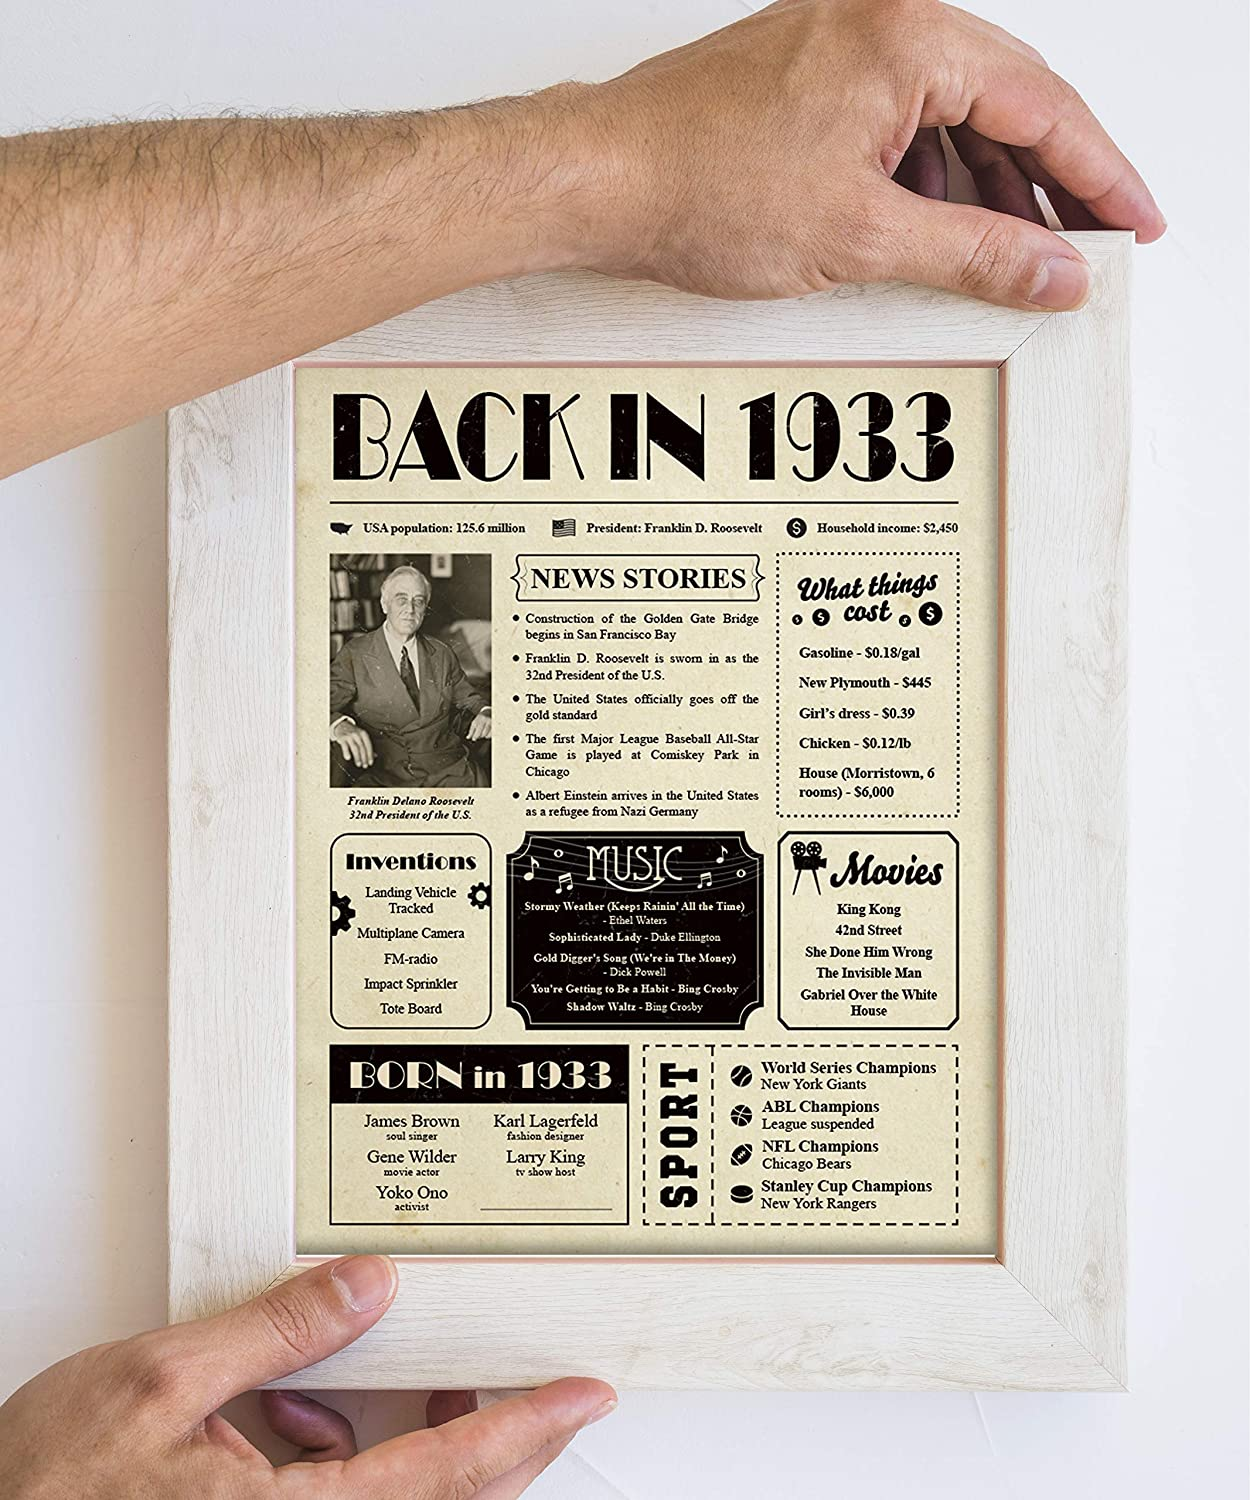 Woman Under 10 Dollars Back in 1920 Poster Newspaper Unframed 8x10 //// 100th Birthday Gift for Women Gift Idea for 100 Year Old Man Dad Grandpa Grandma Birthday Decorations Vintage for Mom Men